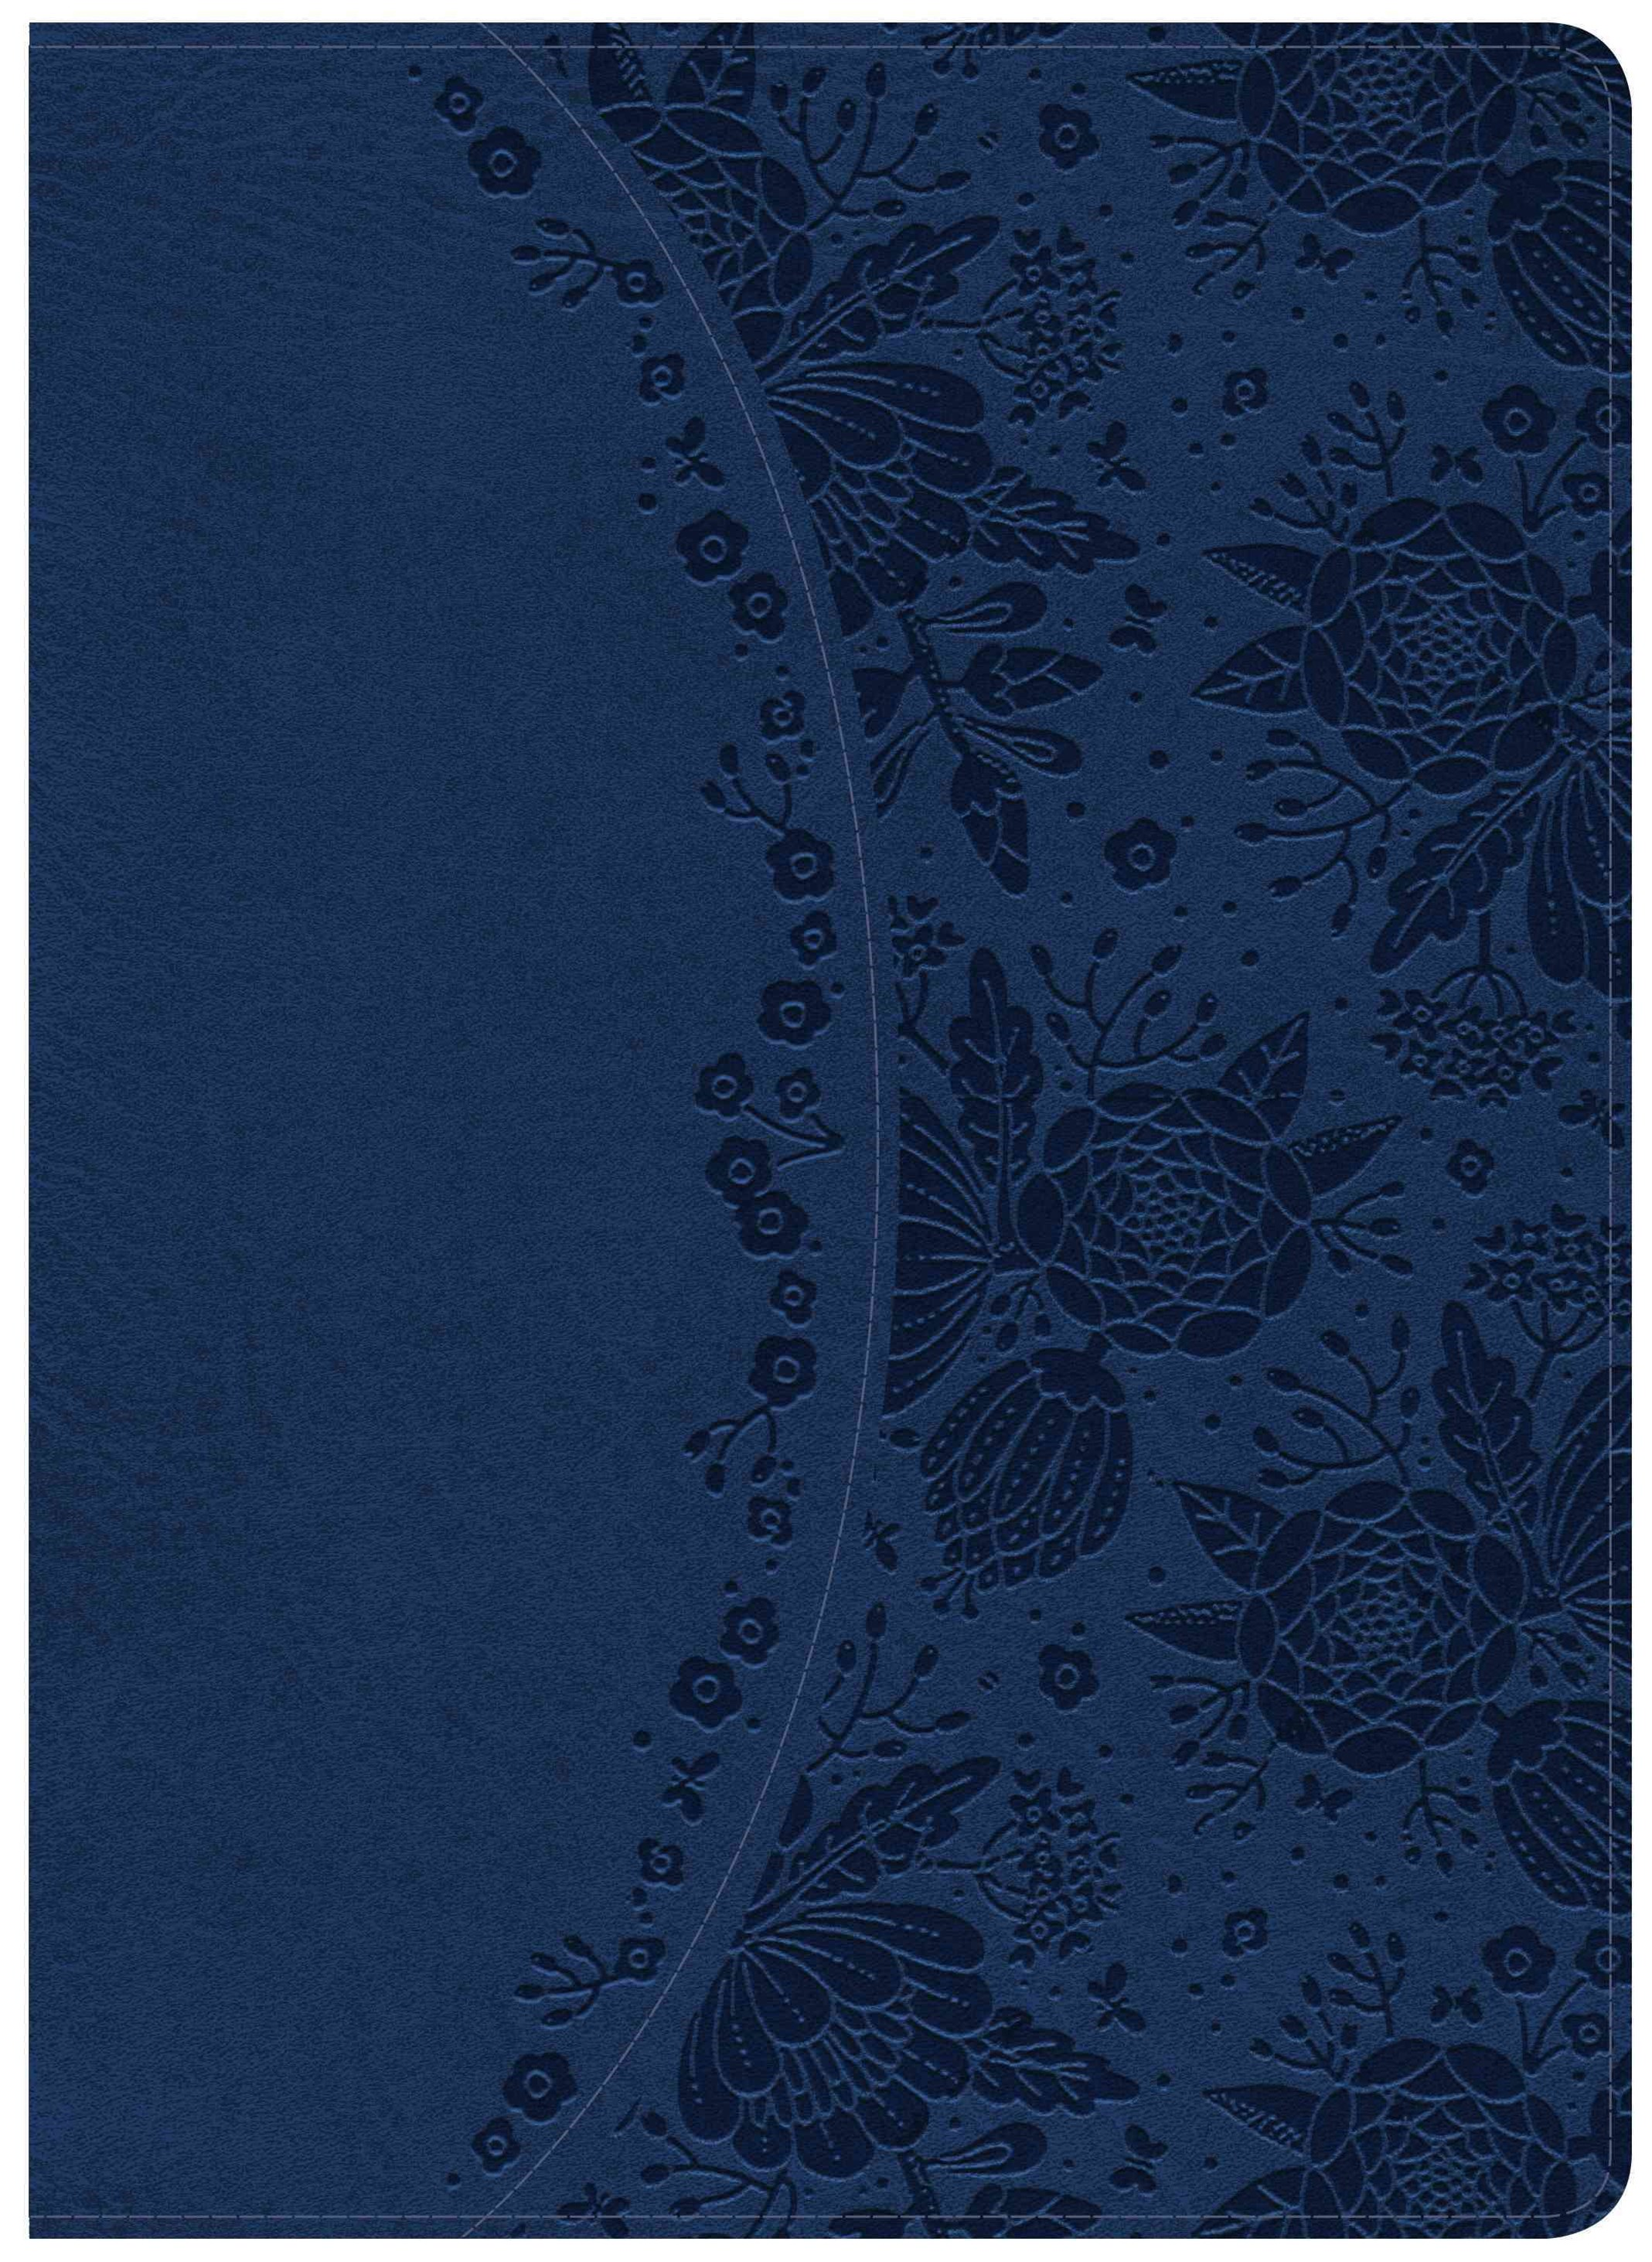 Holman Study Bible: NKJV Edition, Indigo LeatherTouch, Indexed